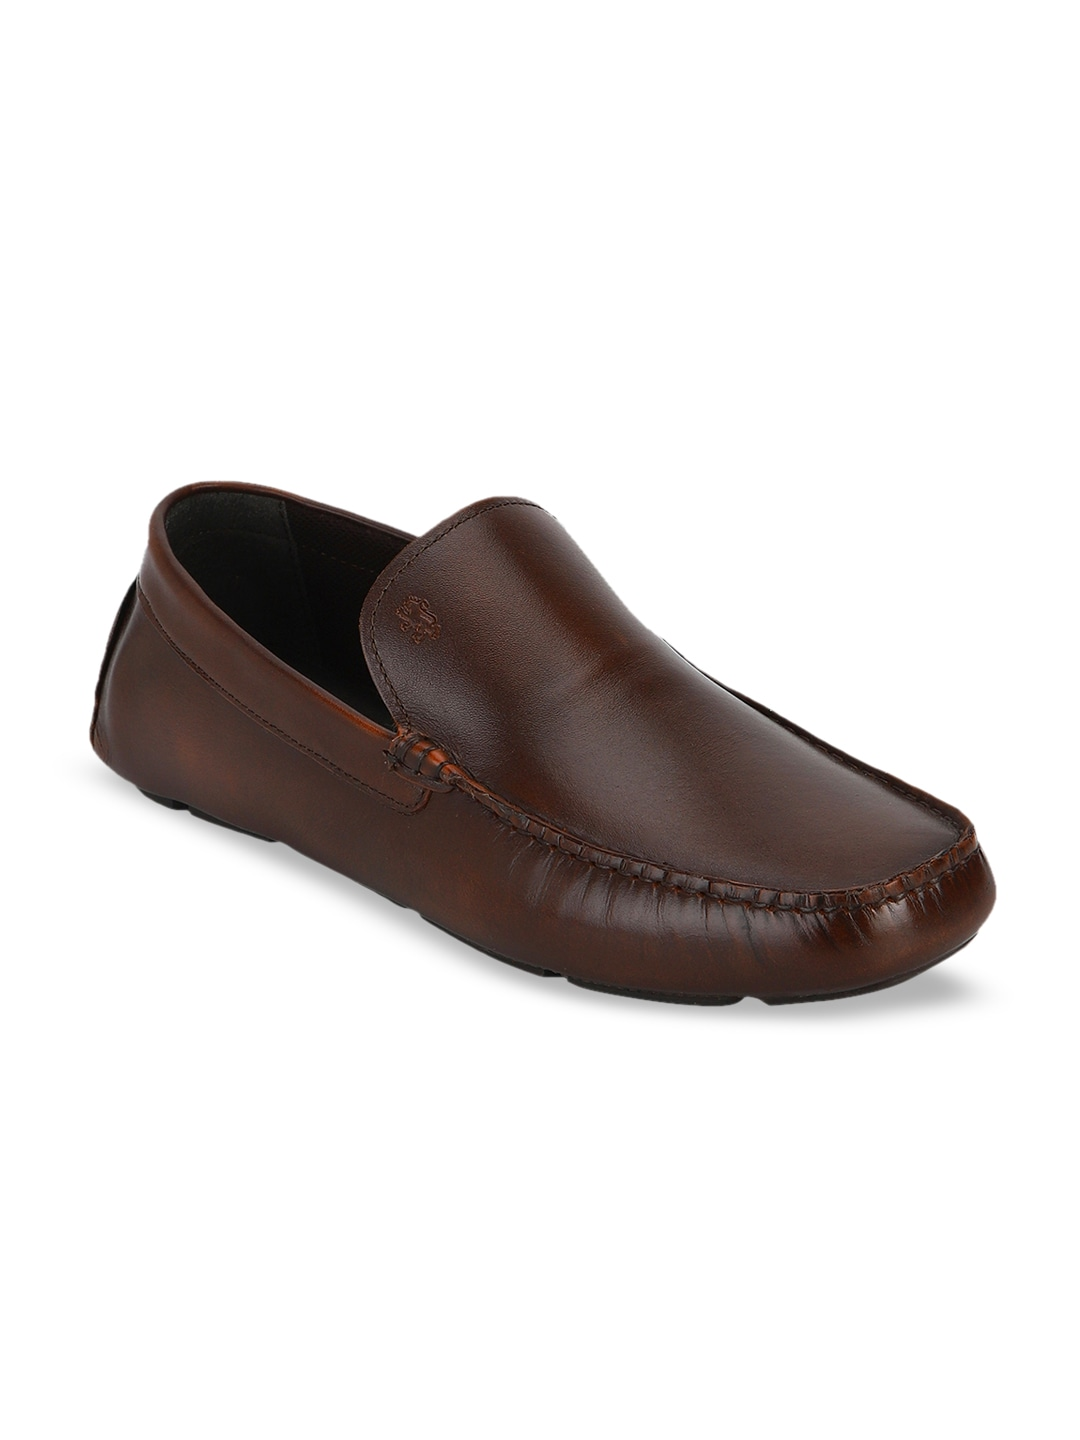 Brown Solid Leather Formal Loafers